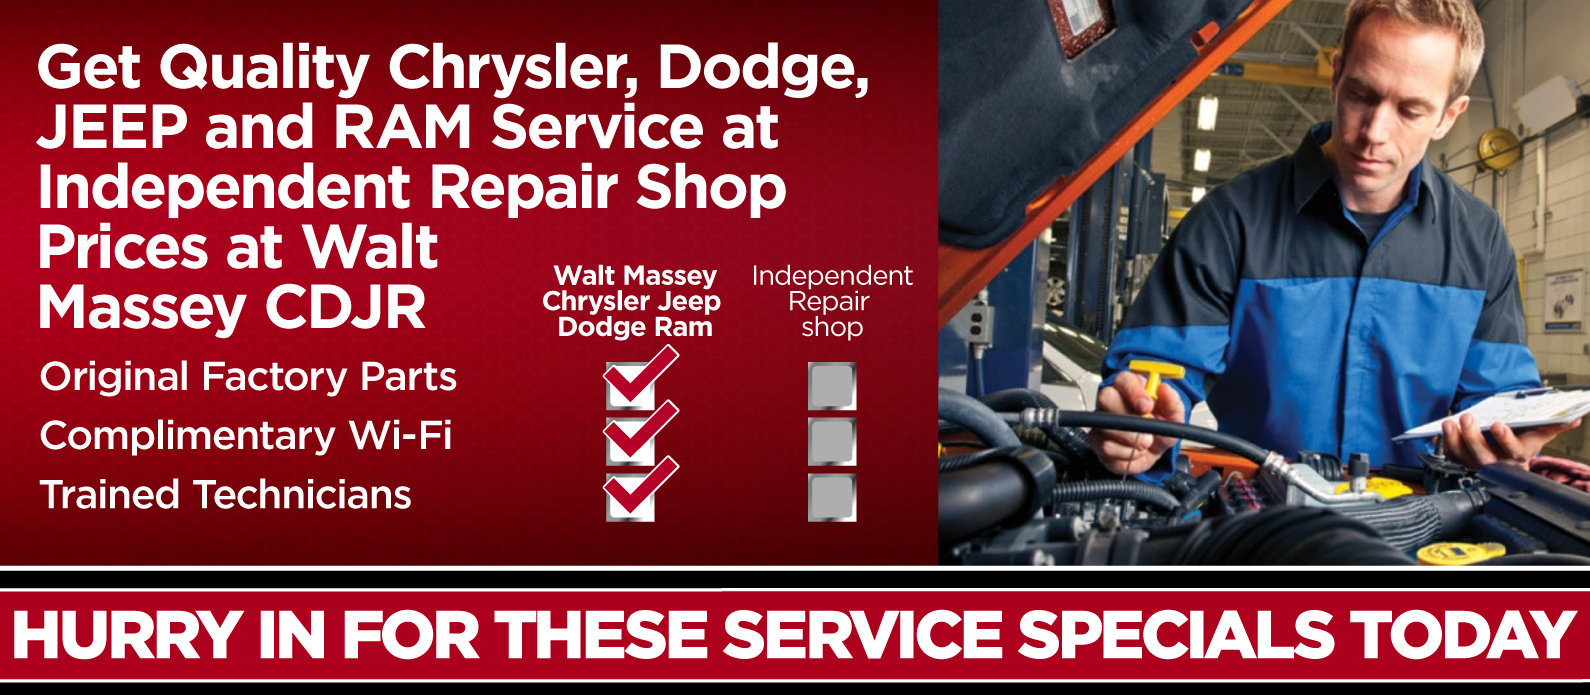 Get quality Chrysler Dodge Jeep Ram Service at Independent Repair Shop Prices at Walt Massey CDJR